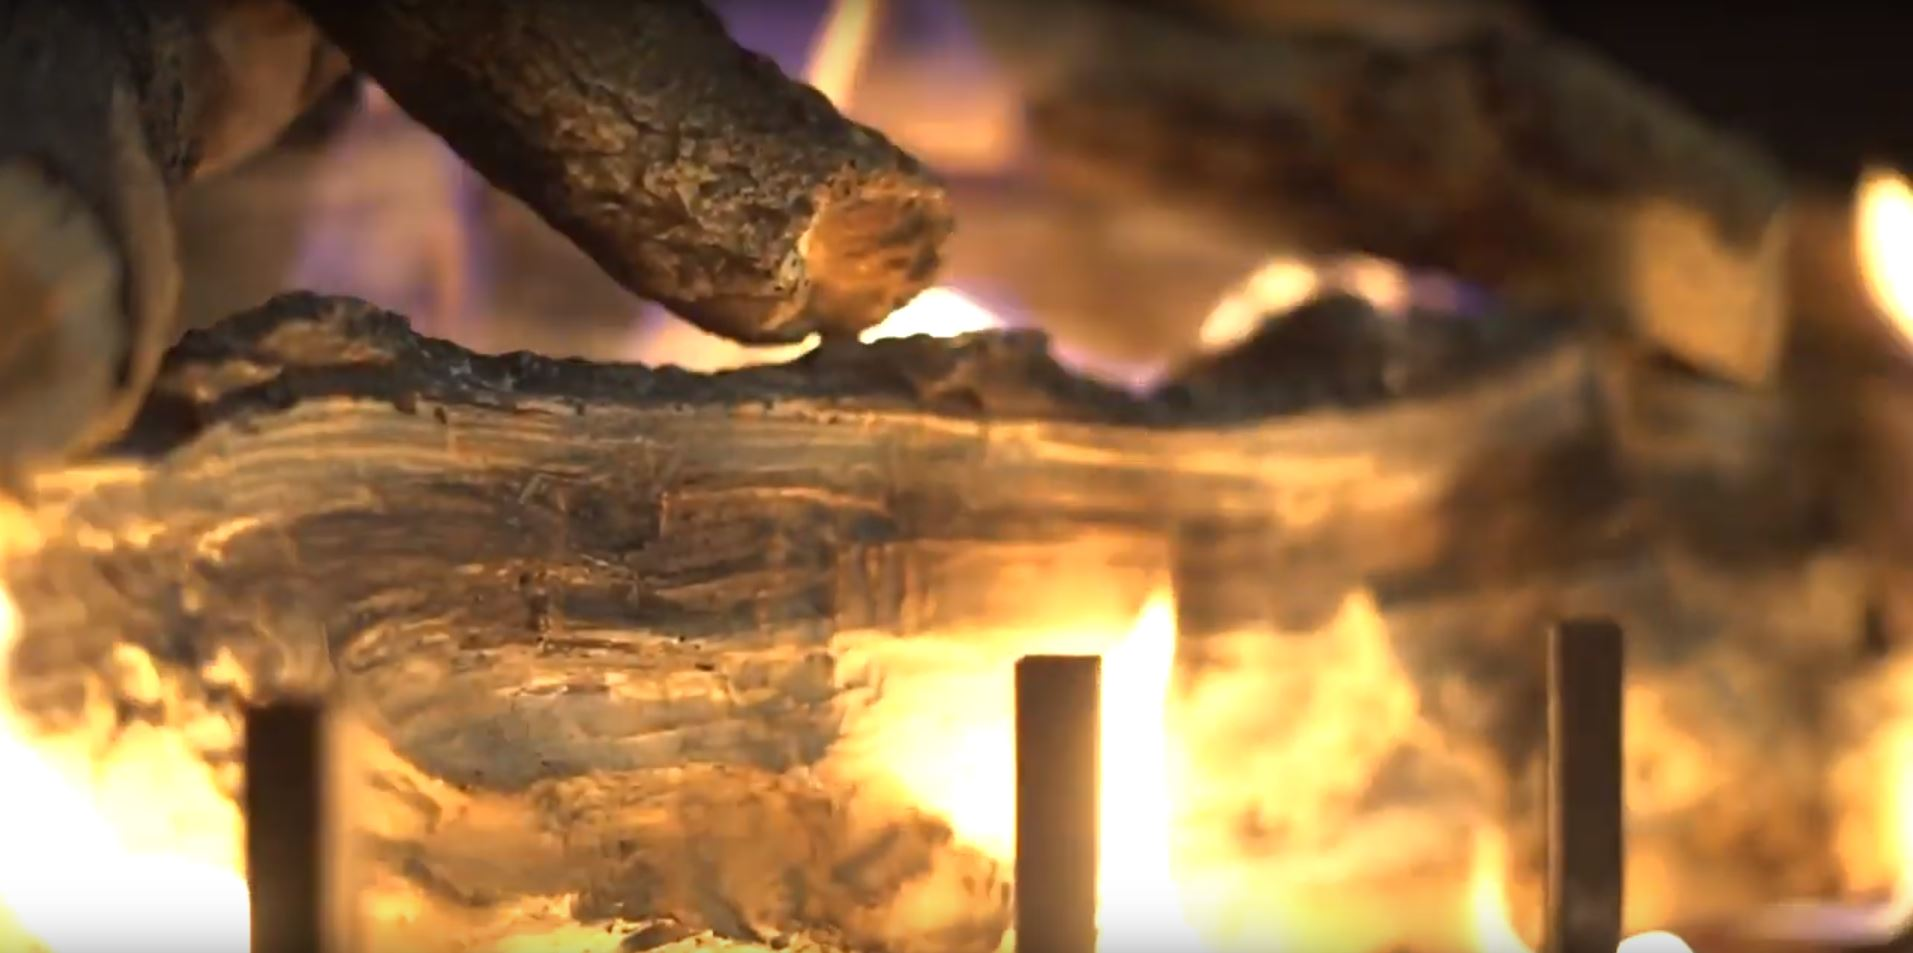 Fireplace Repair Nashville Tn 10 Problems With Wood Burning Fireplaces Nashville Tn Ashbusters